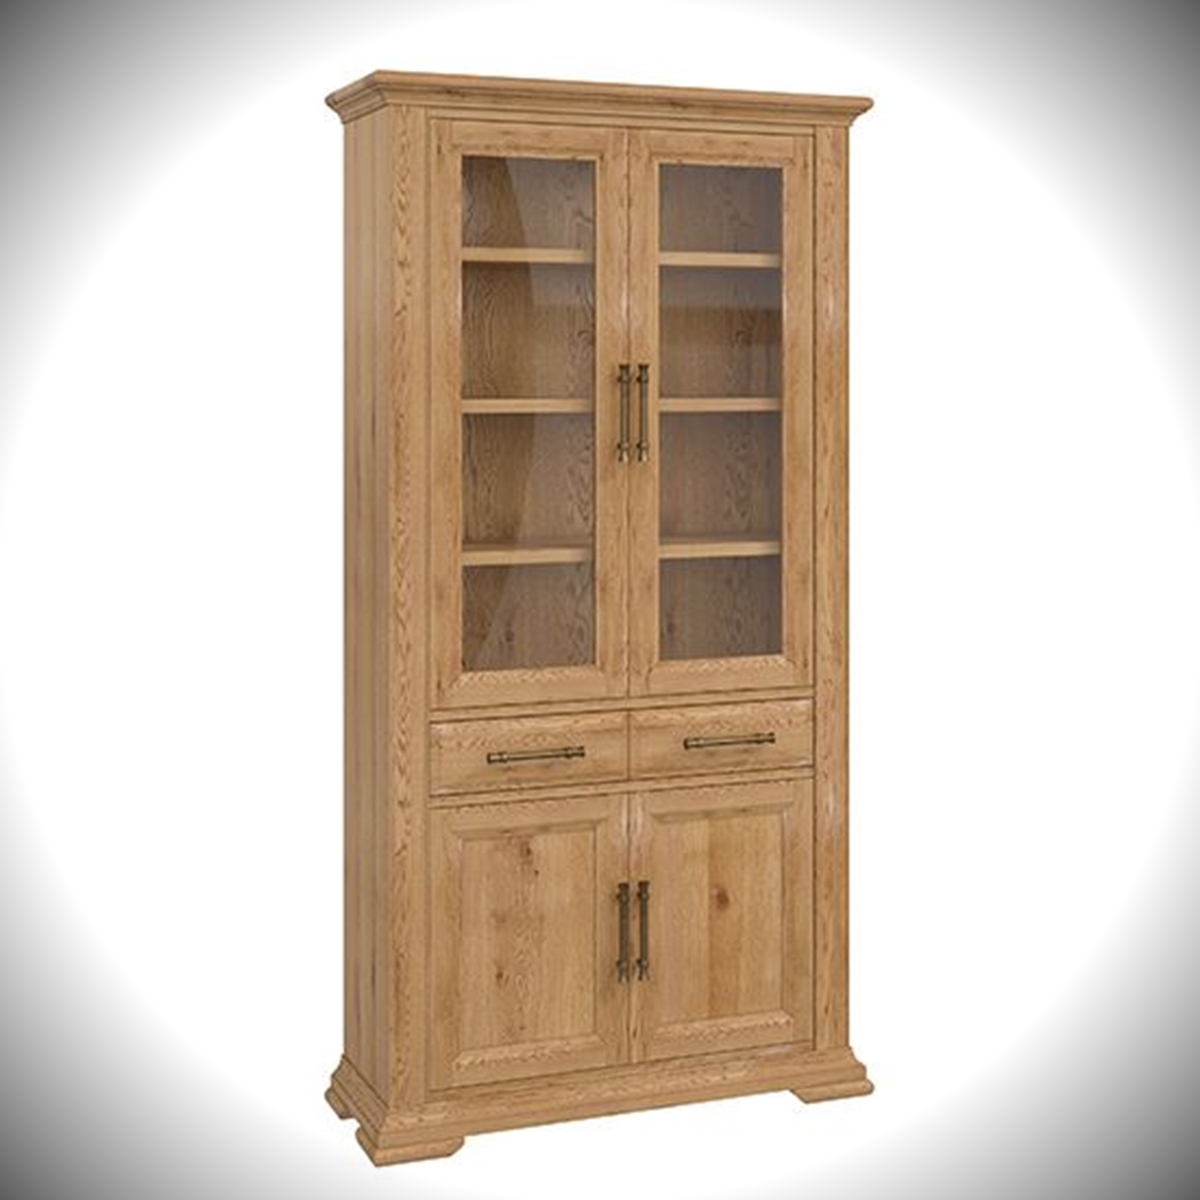 Belgrave Display Cabinet - Rustic Oak